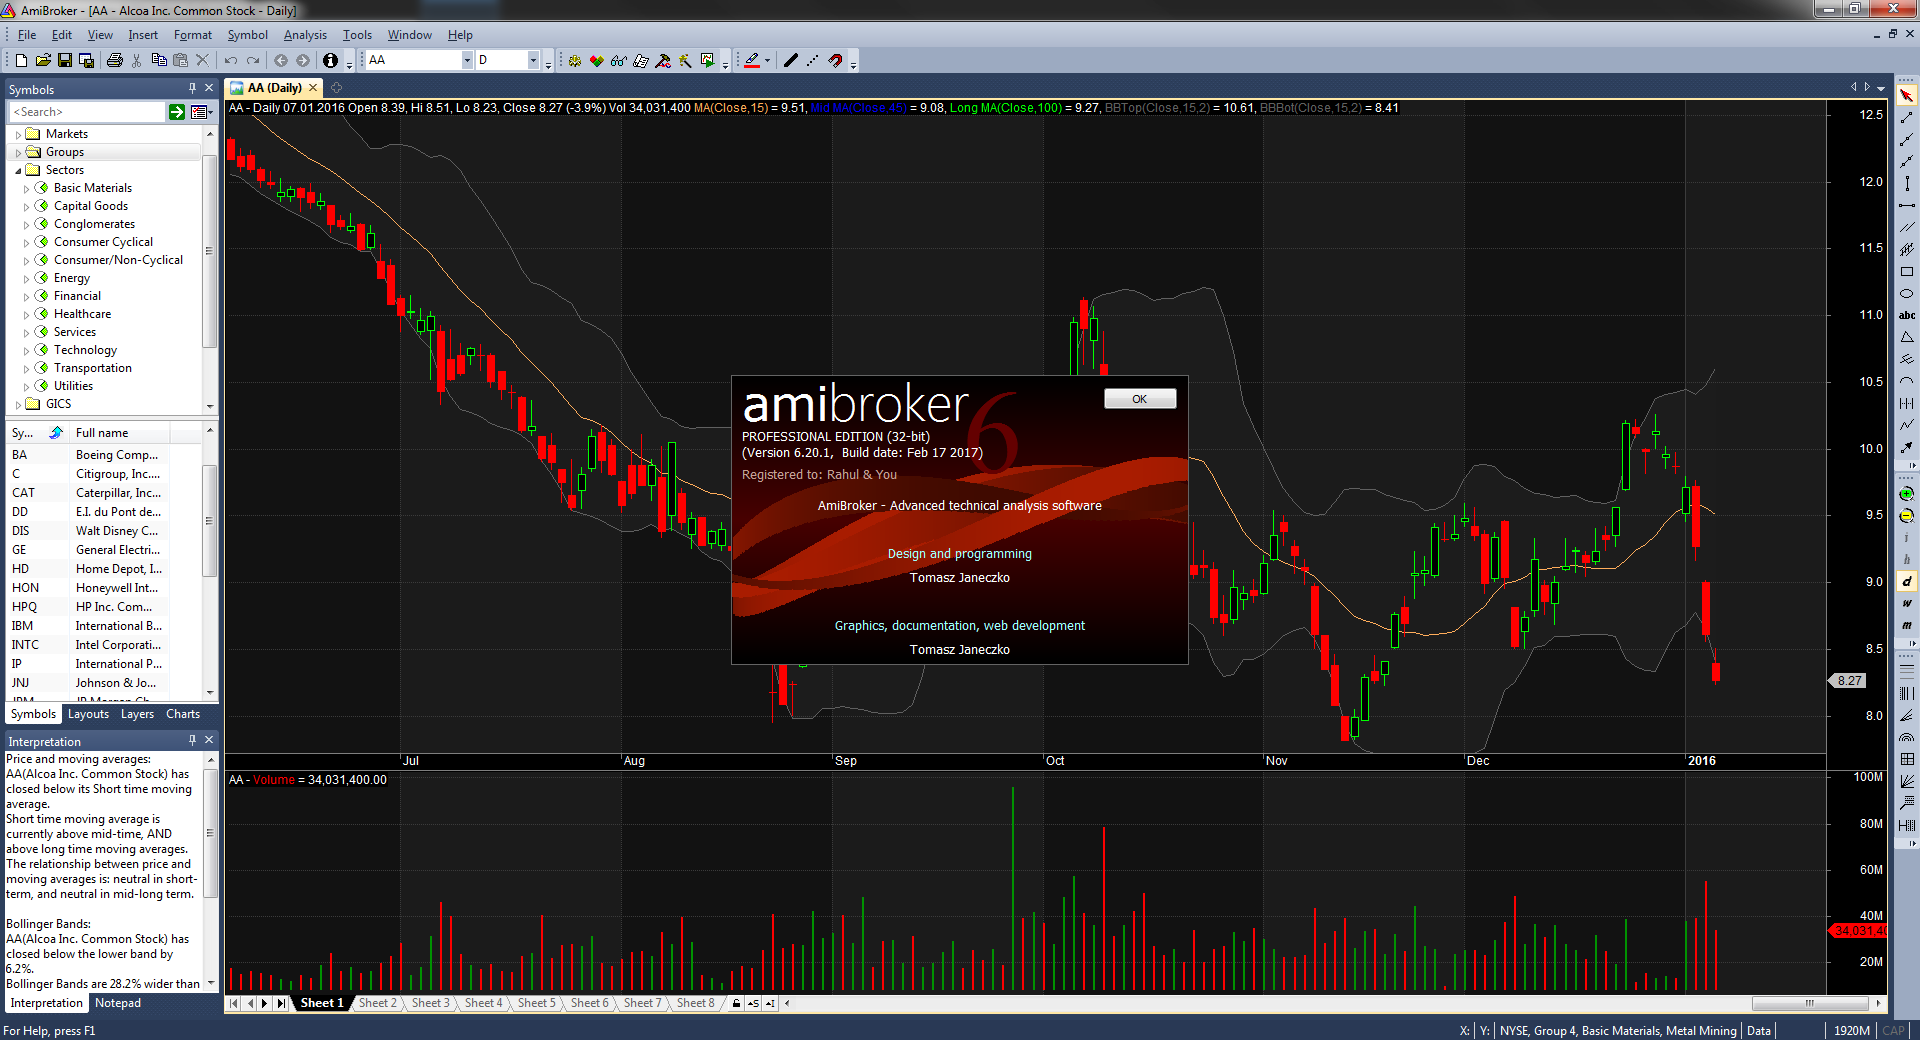 Working with AmiBroker Professional Edition 6.20.1 full license